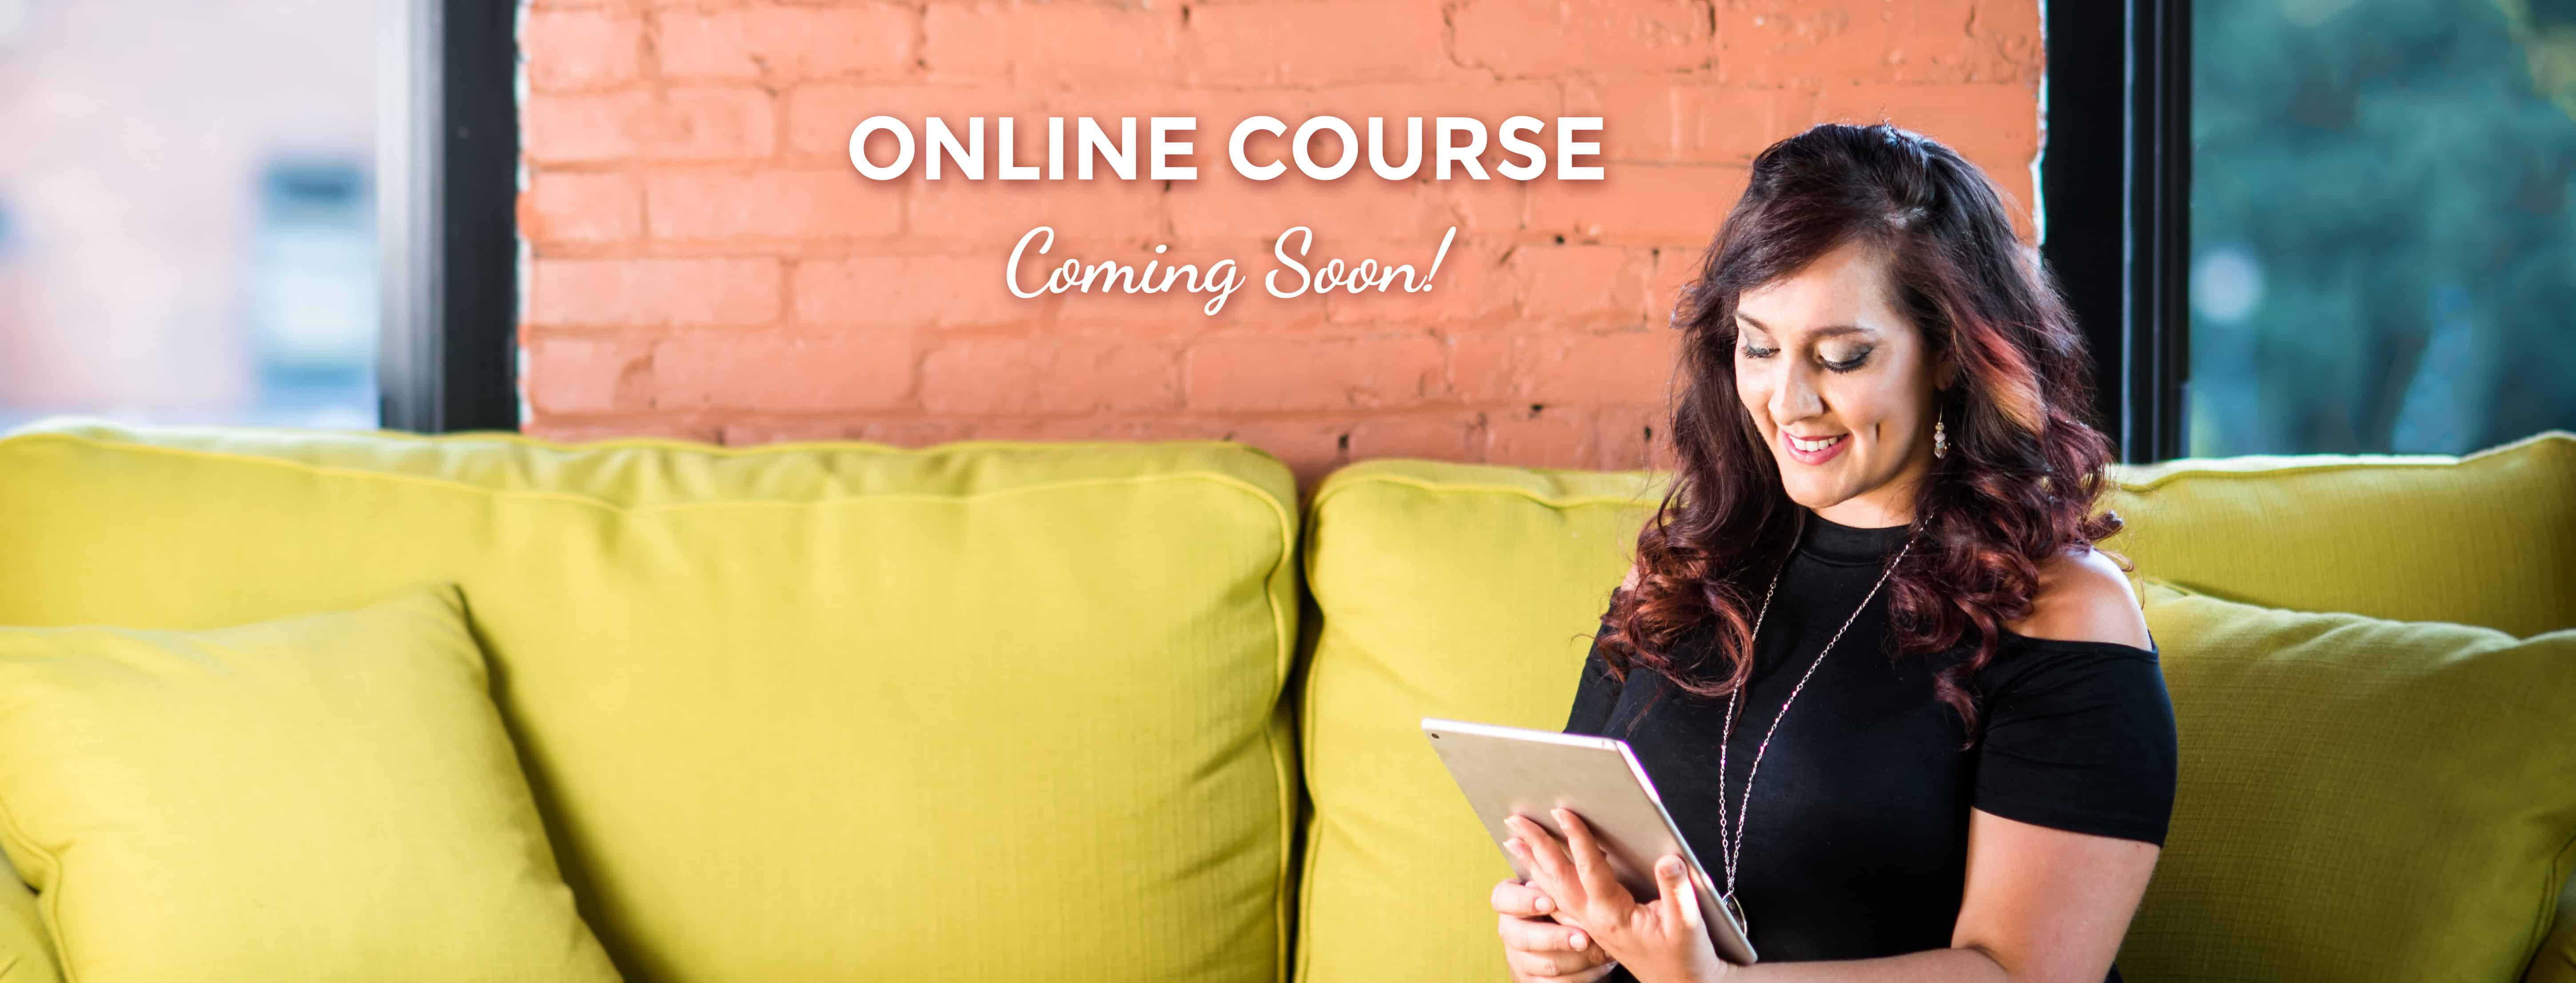 Reagan Burns online course